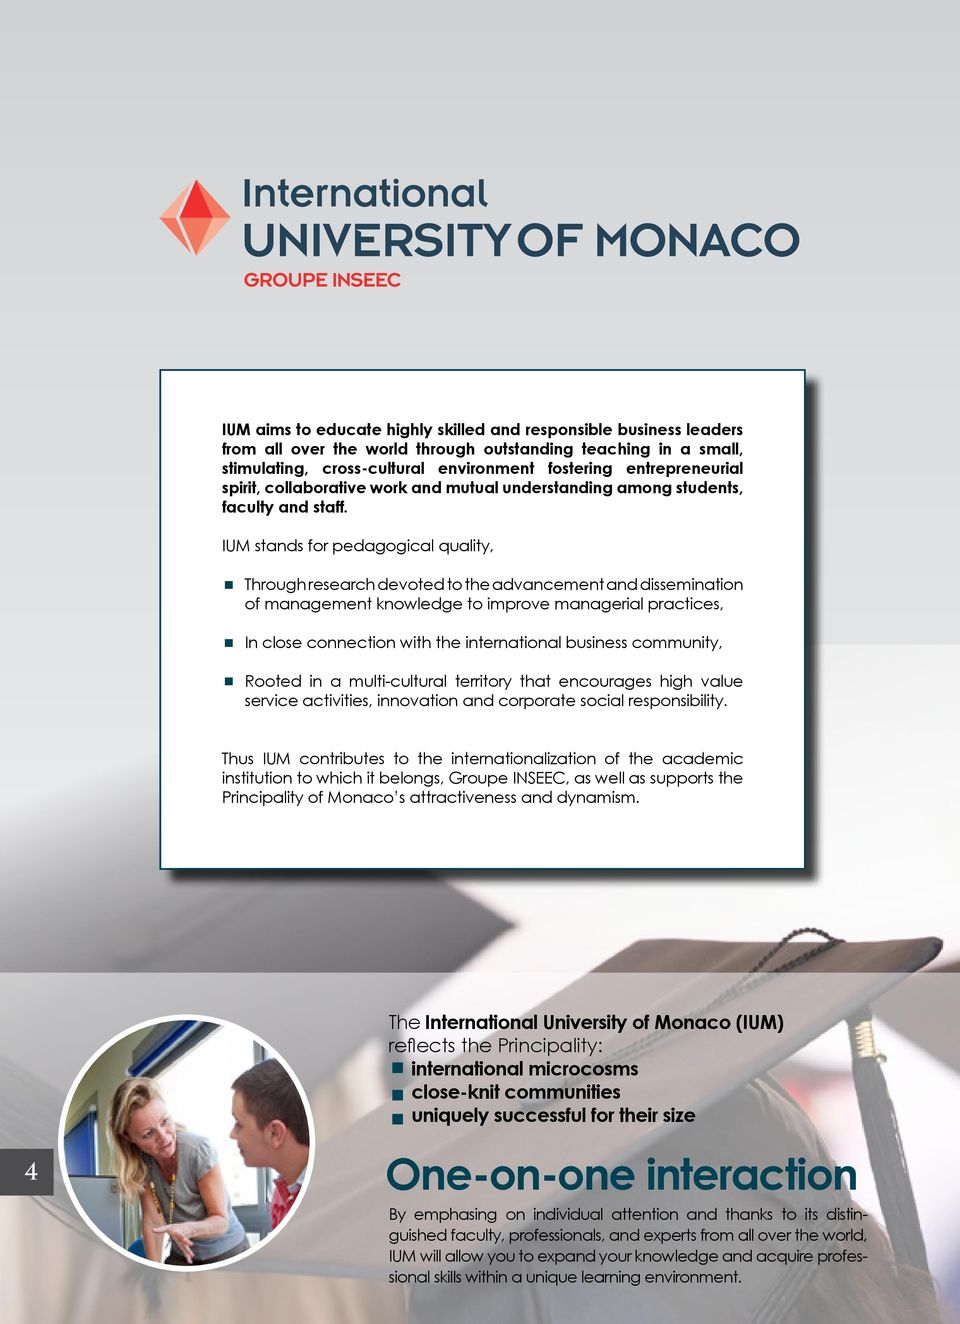 IUM stands for pedagogical quality, Through research devoted to the advancement and dissemination of management knowledge to improve managerial practices, In close connection with the international